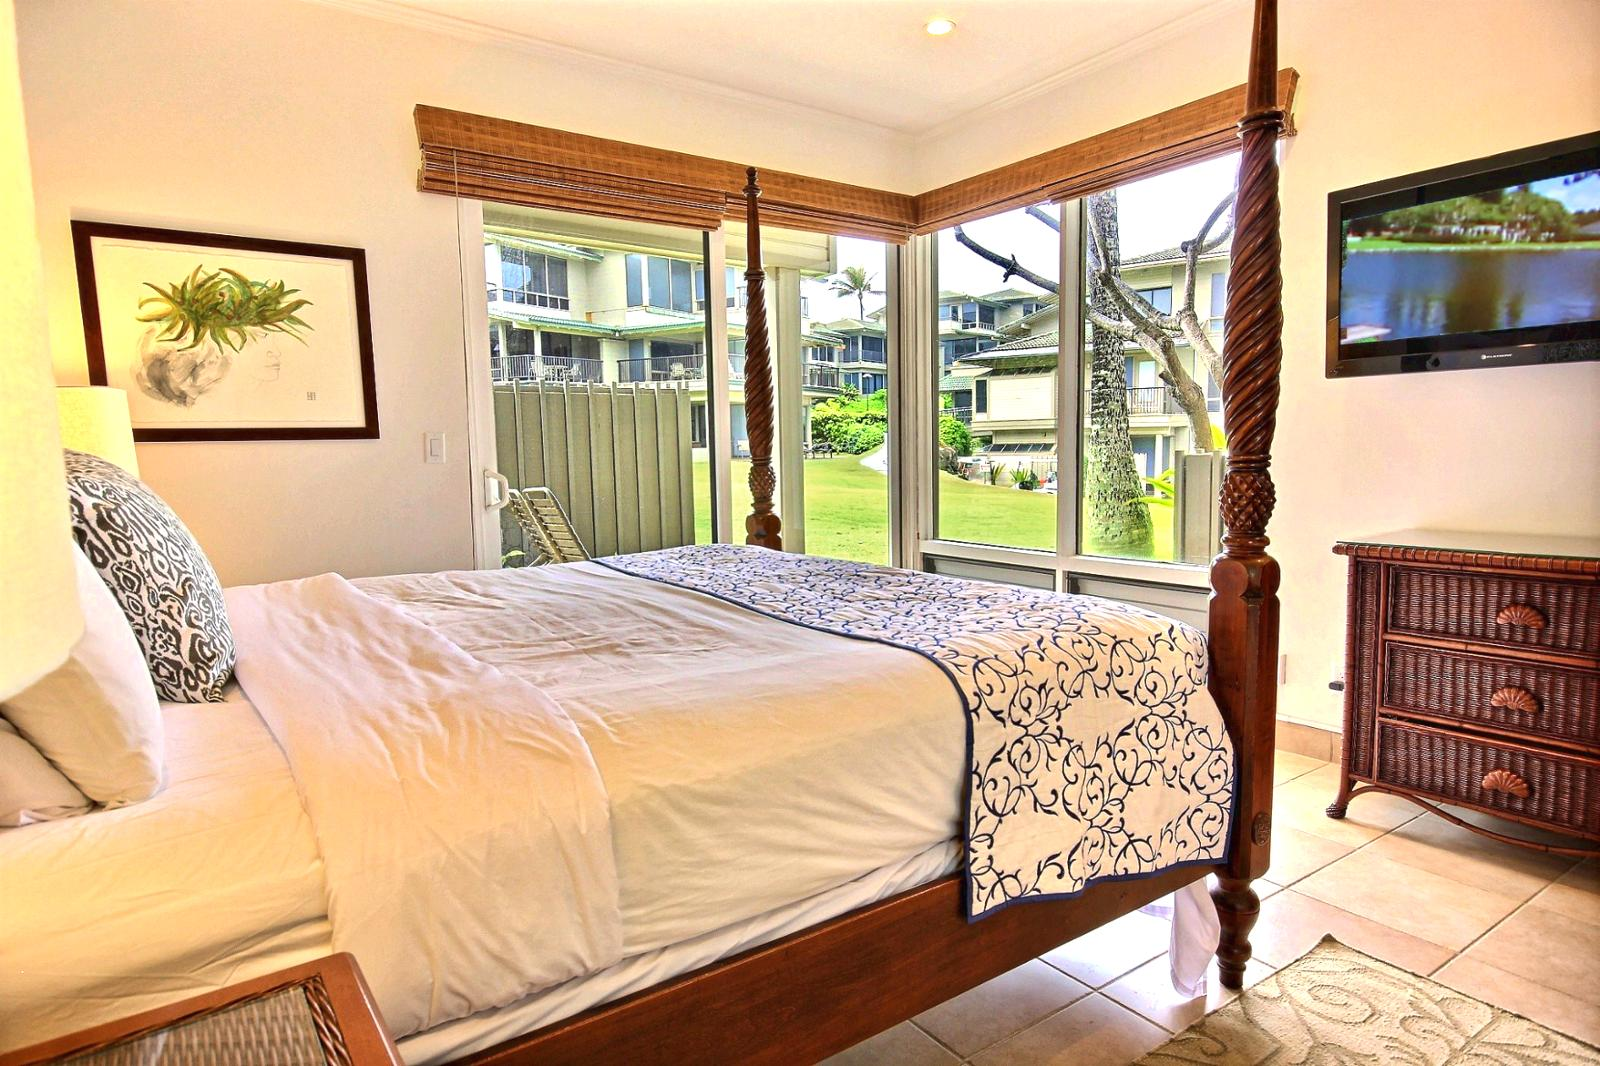 Pictures kbm hawaii for Short four poster bed